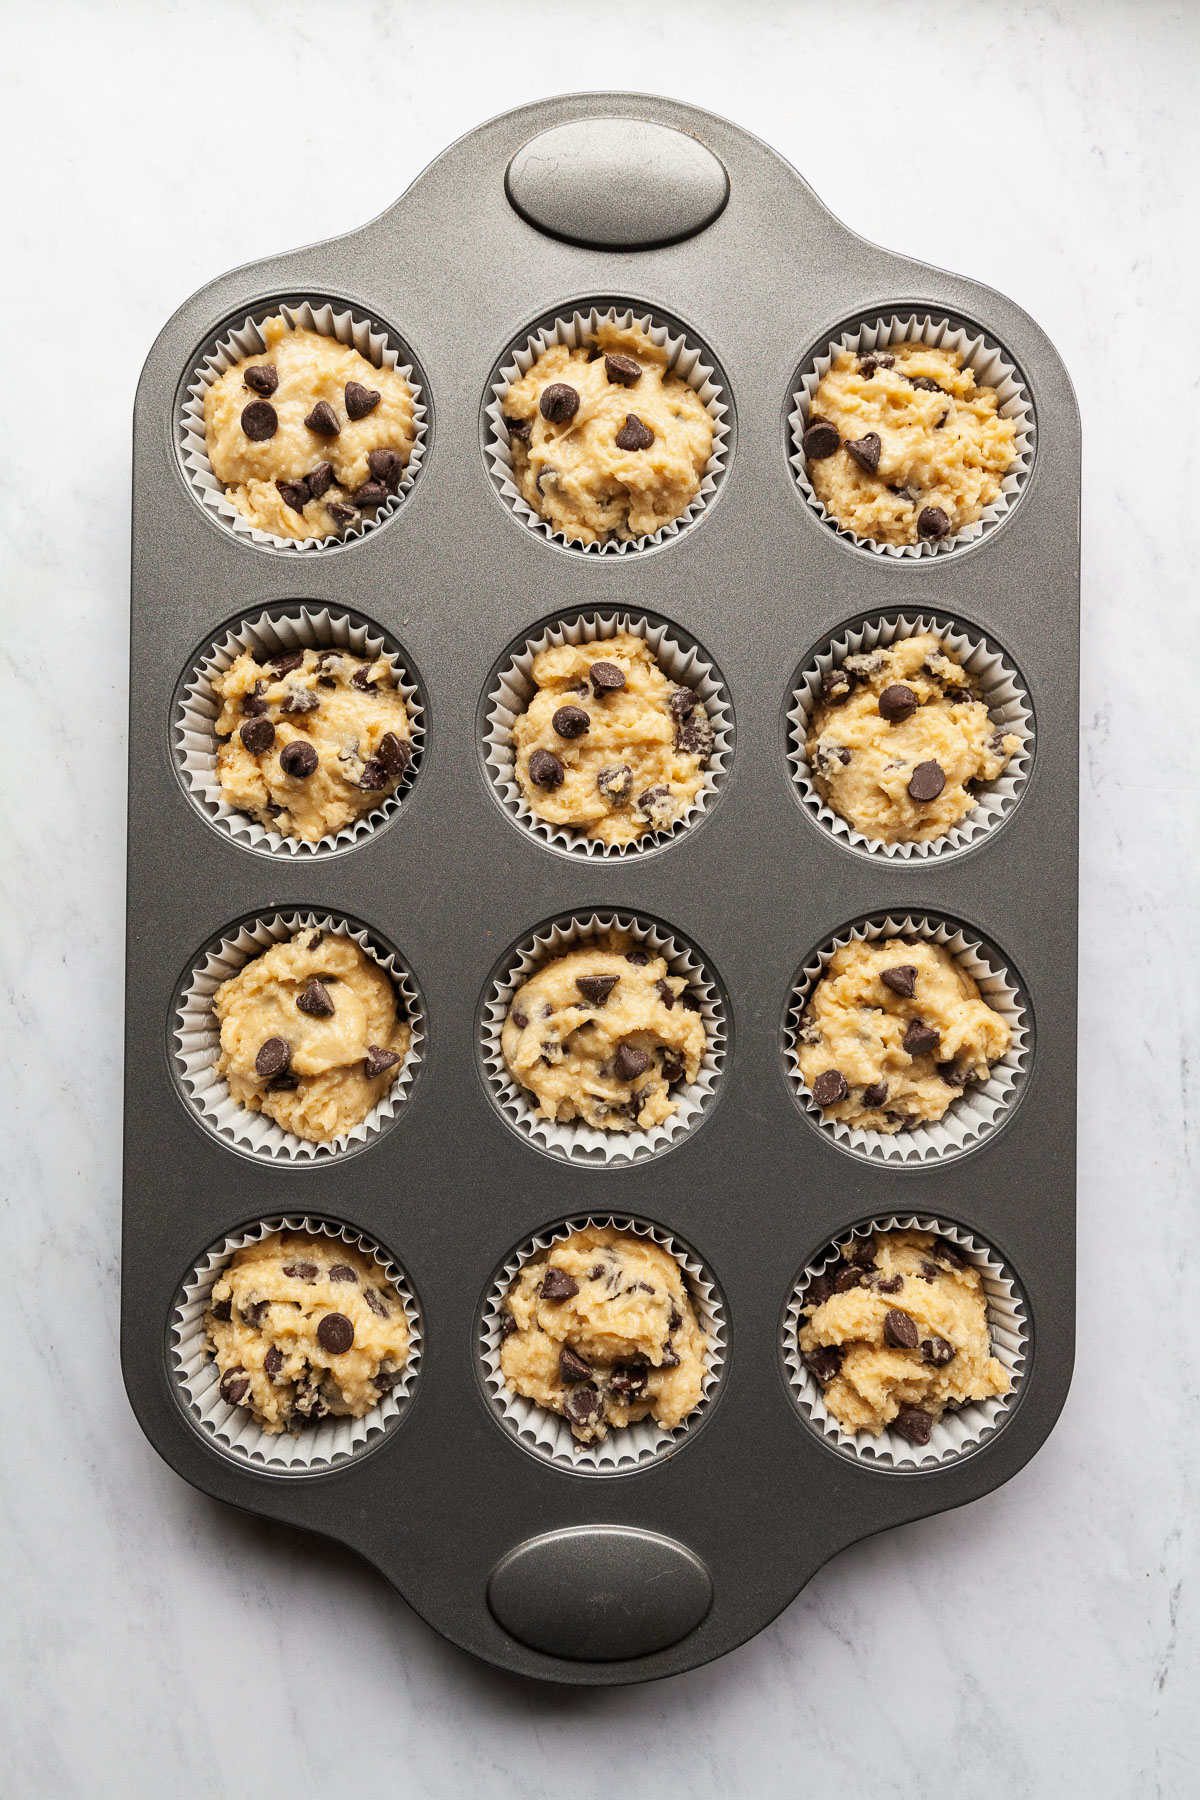 chocolate chip muffins in the pan before baking